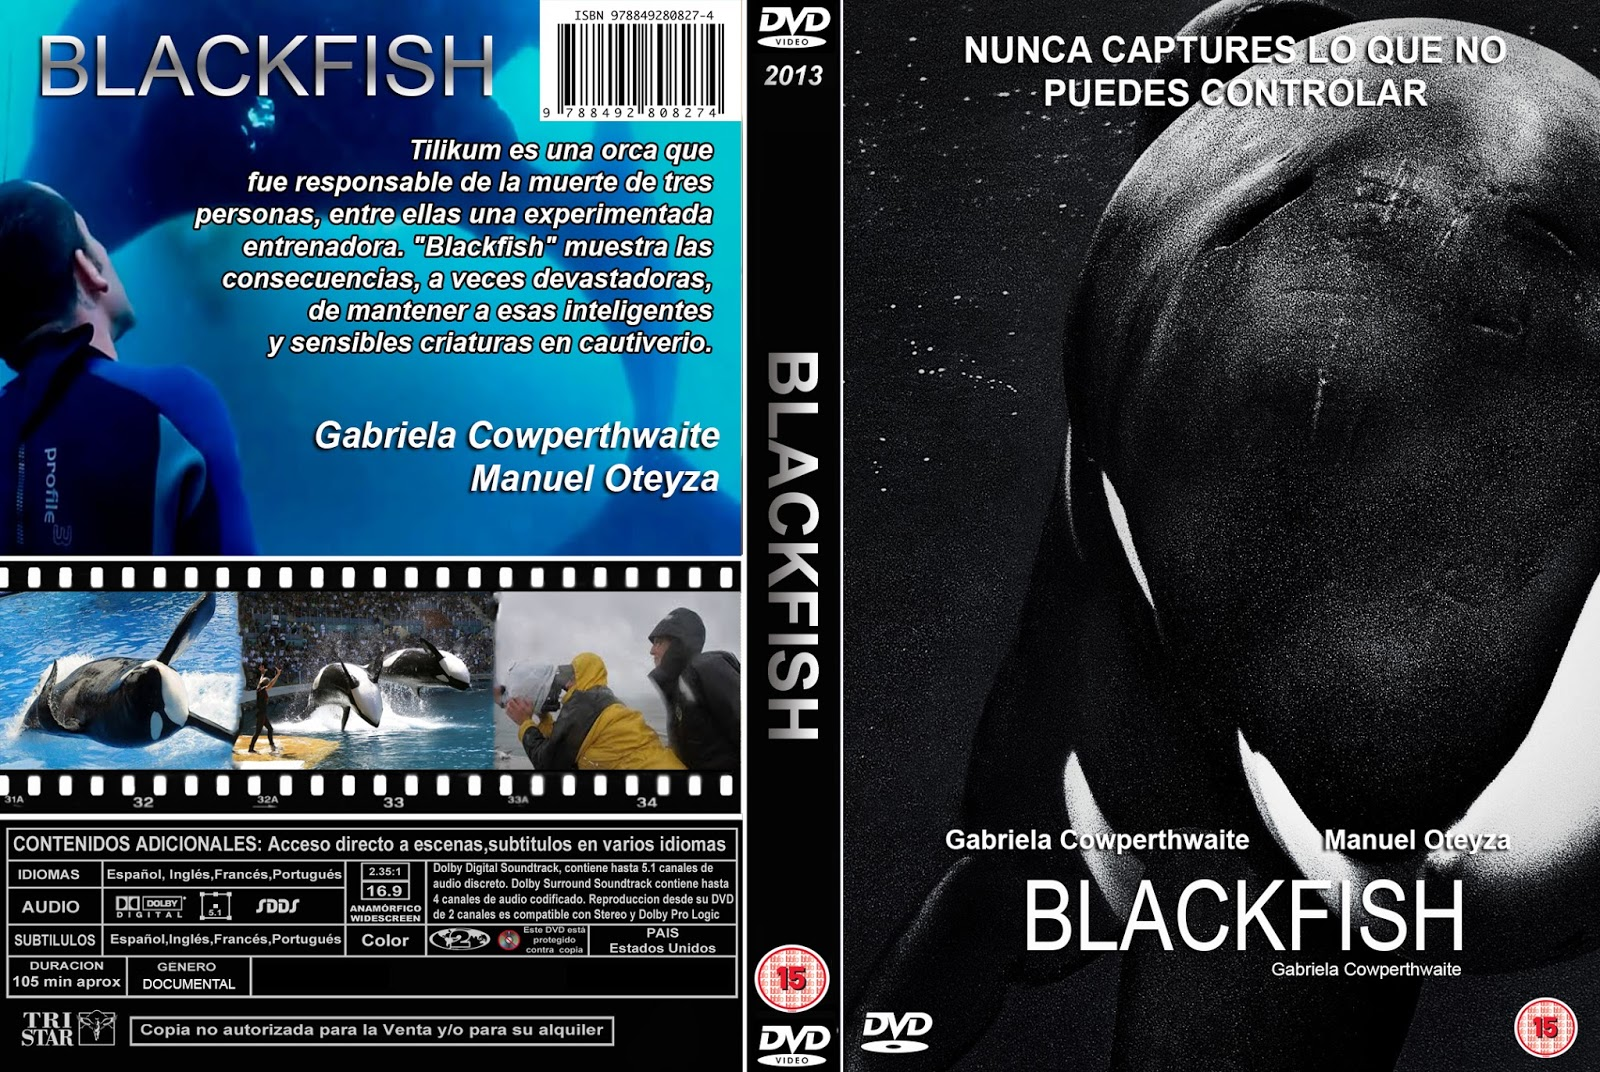 Blackfish Fúria Animal BDRip XviD Dual Áudio BLACKFISH DVD COVER 2013 ESPA C3 91OL